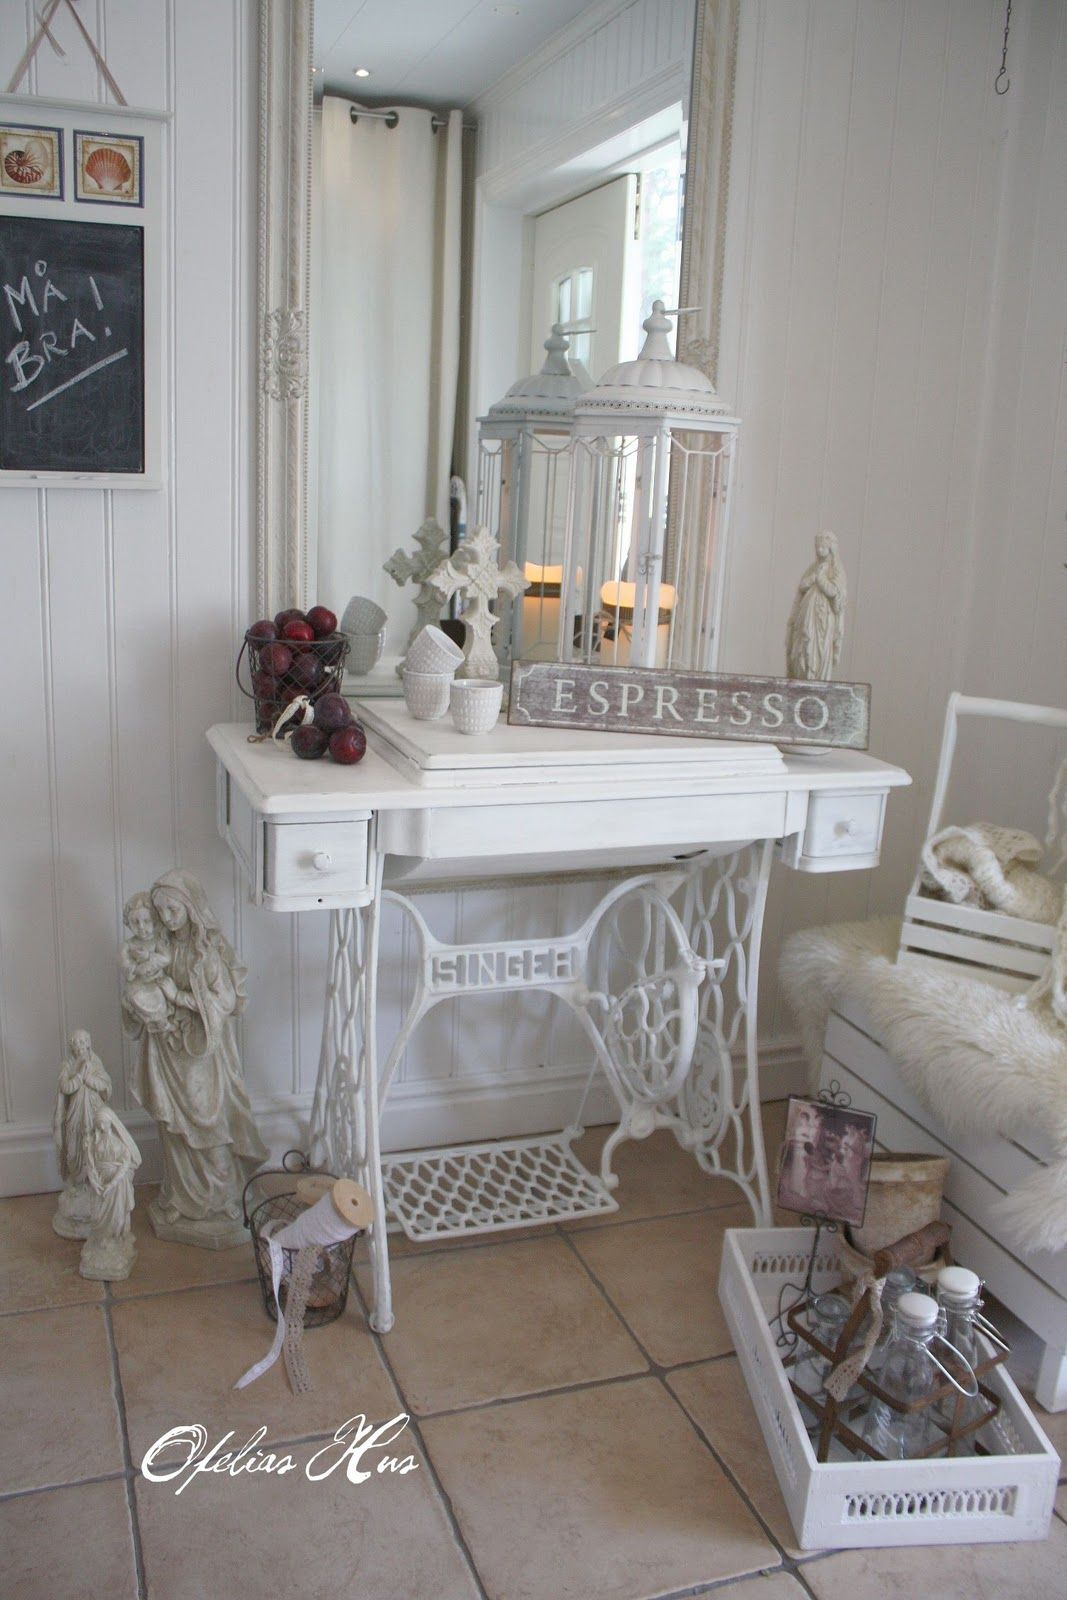 pingl par monique duquenoy sur relooking m bel dekoration et shabby chic. Black Bedroom Furniture Sets. Home Design Ideas